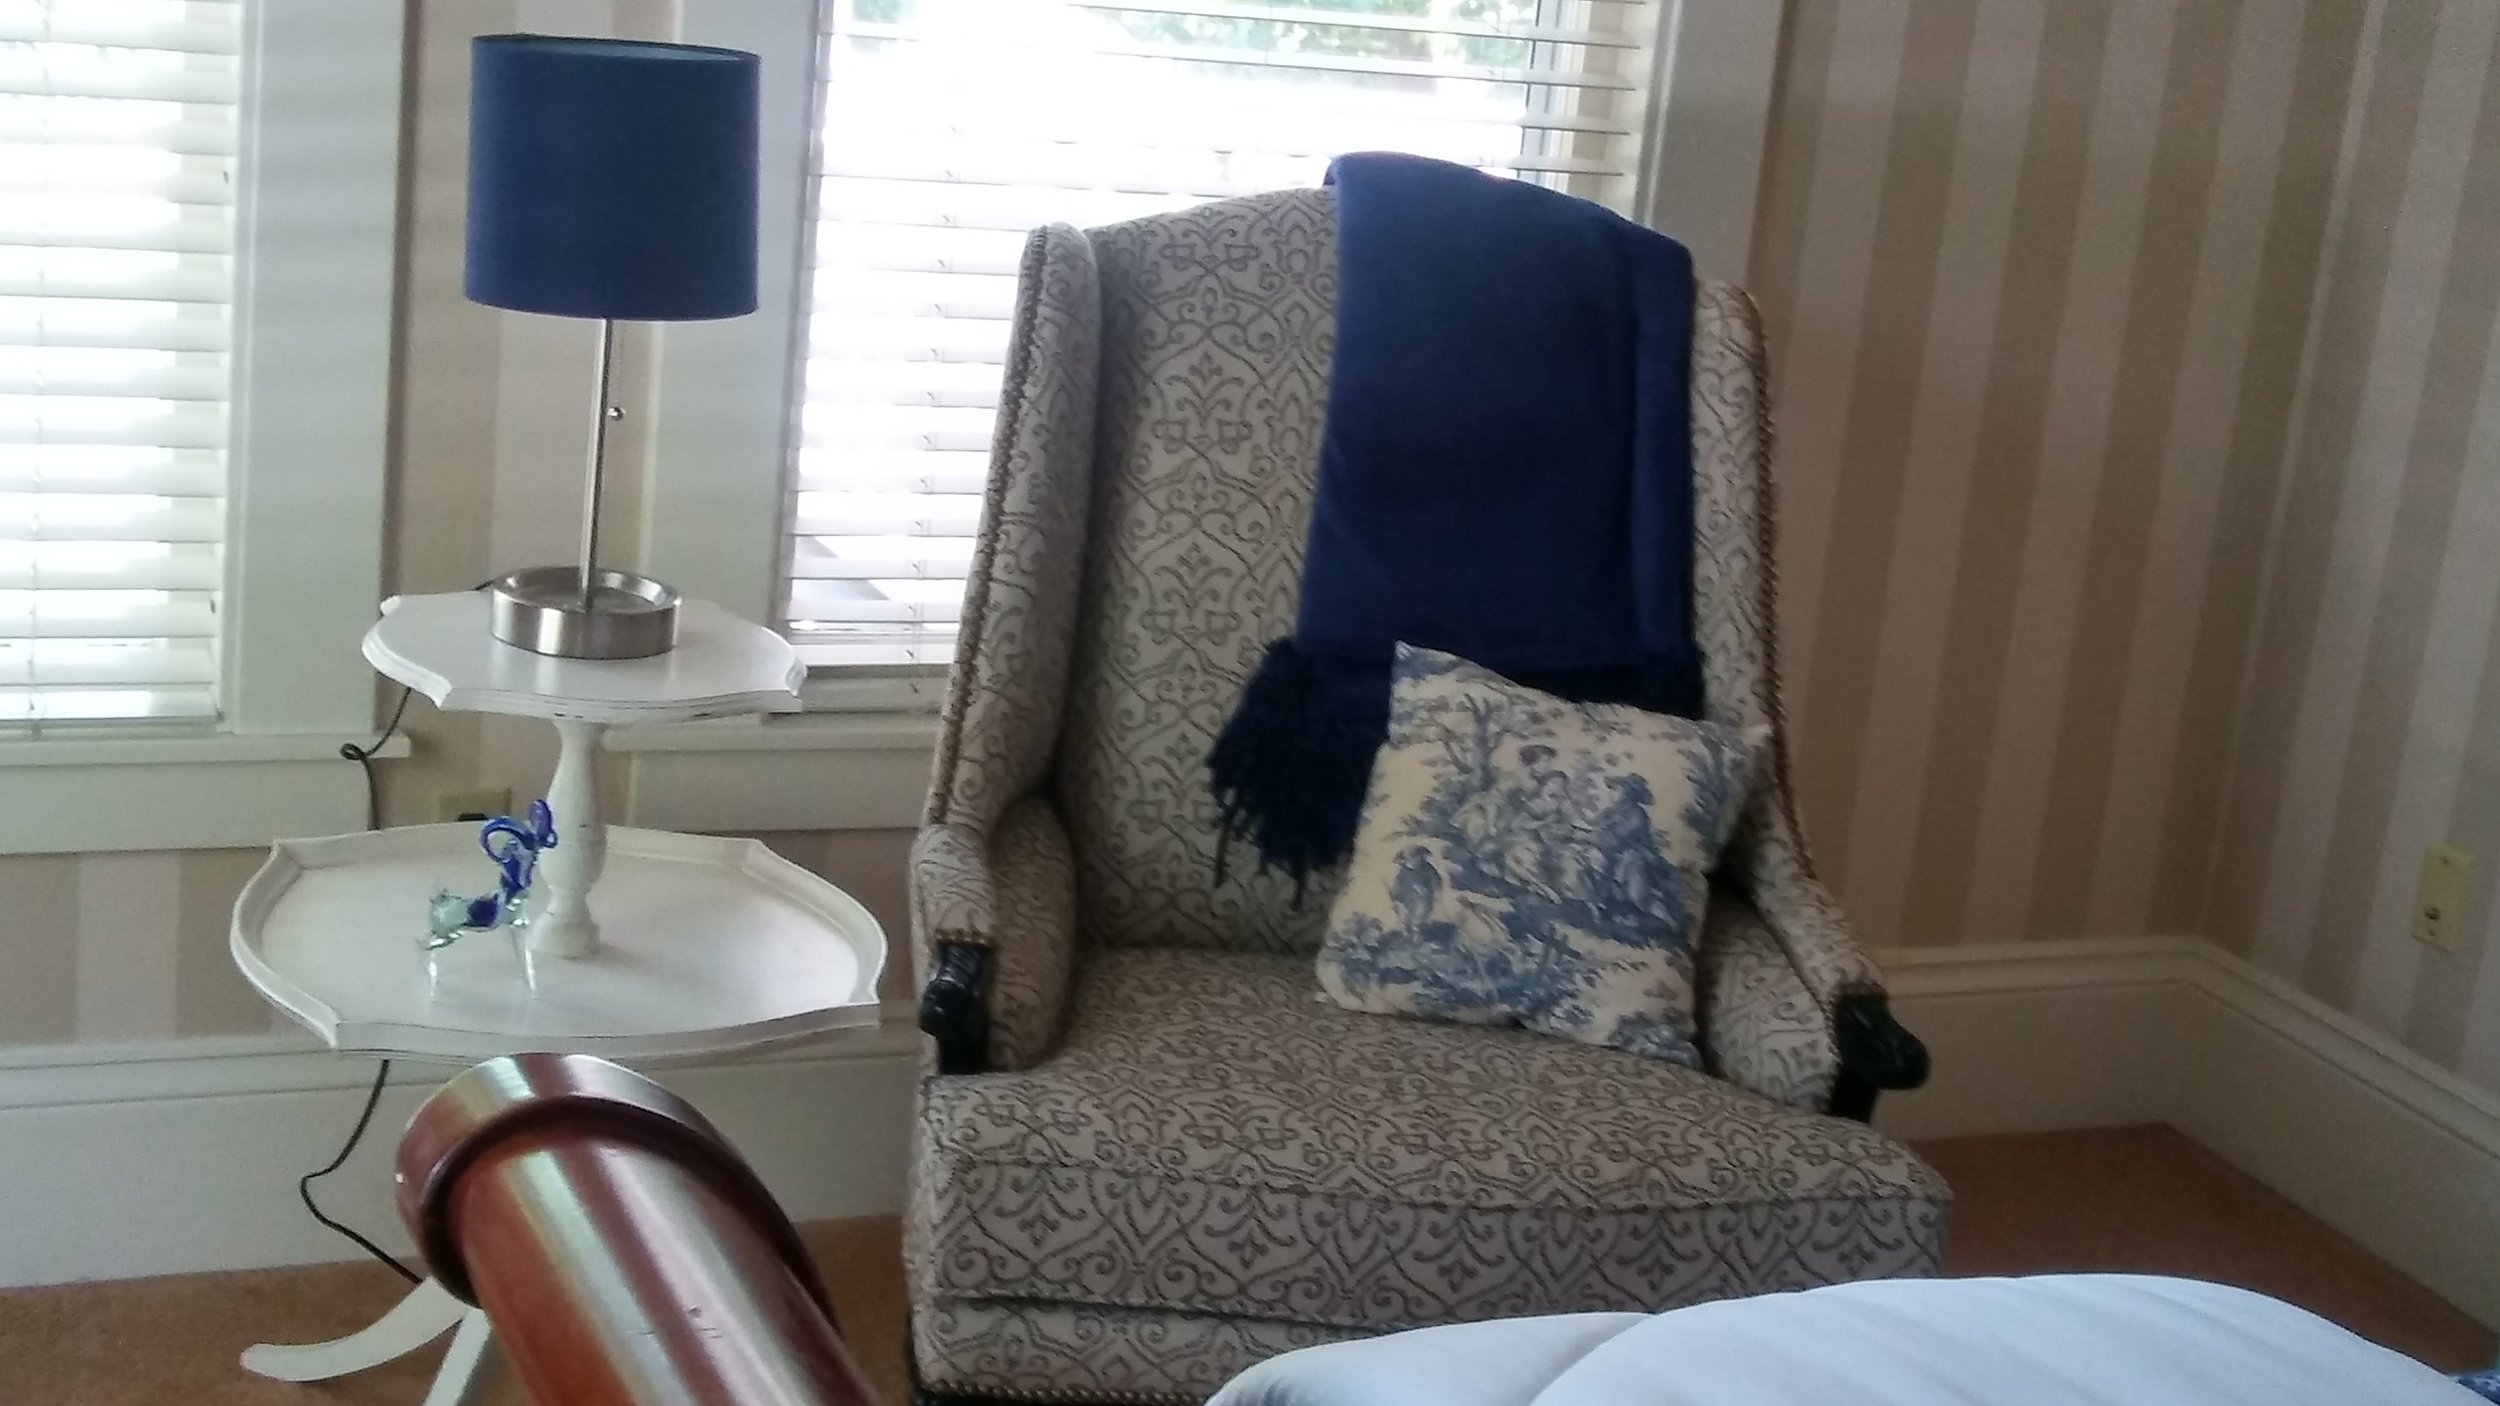 "<img alt= ""Patterned chair with blue throw and table with small lamp"" />"